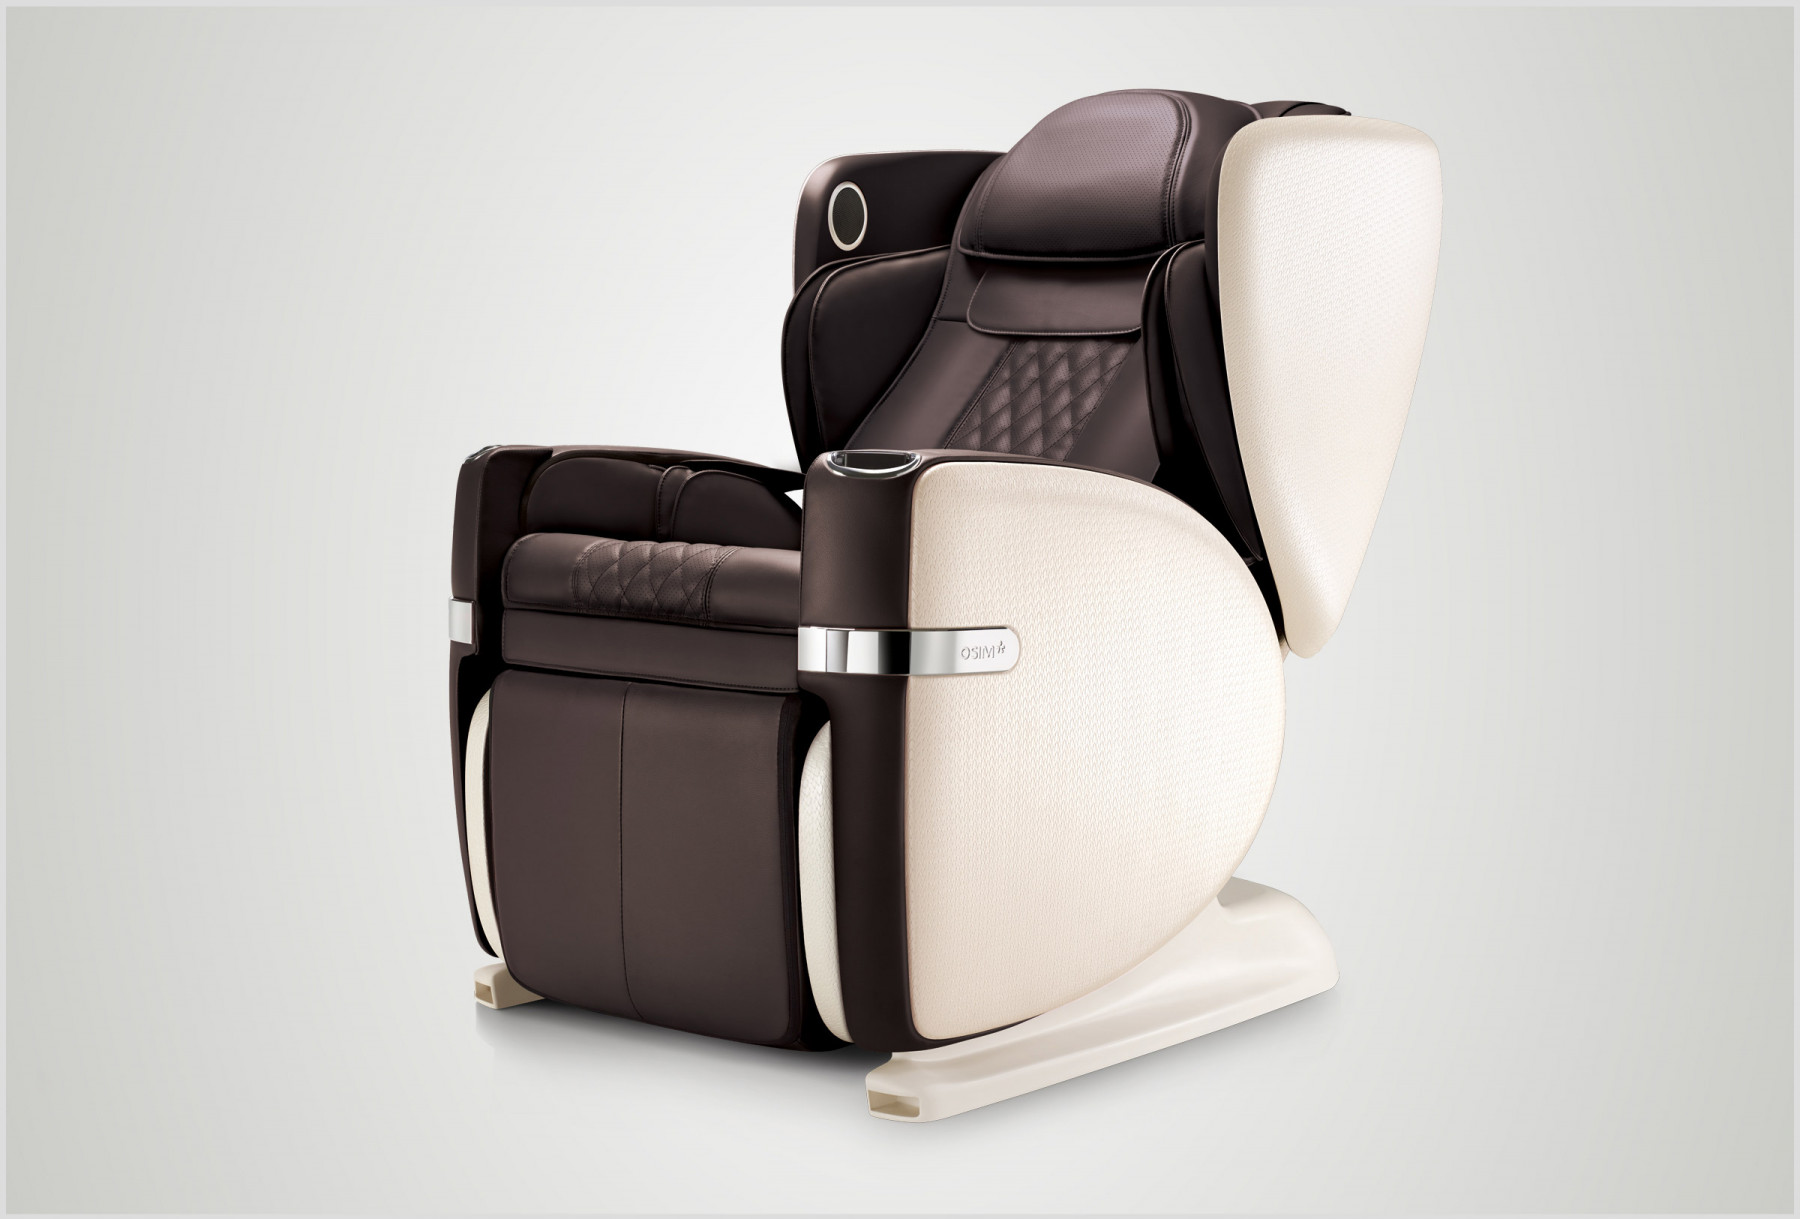 massage chair prices white plastic ulove osim singapore